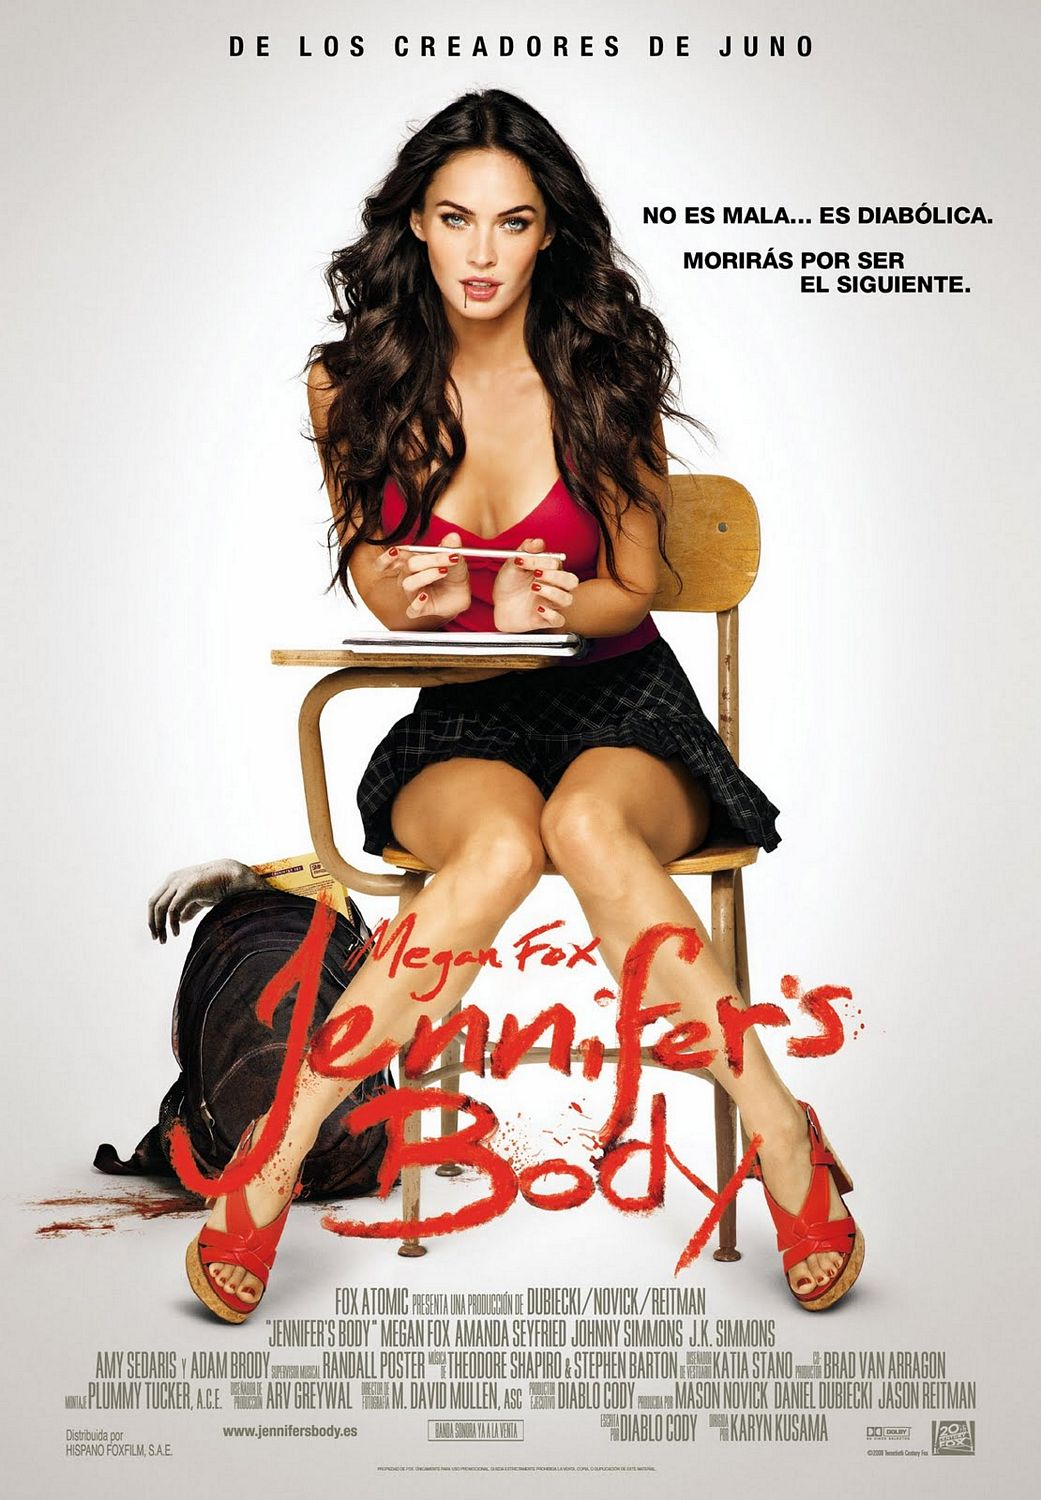 El nuevo poster internacional de Jennifer's Body con Megan Fox